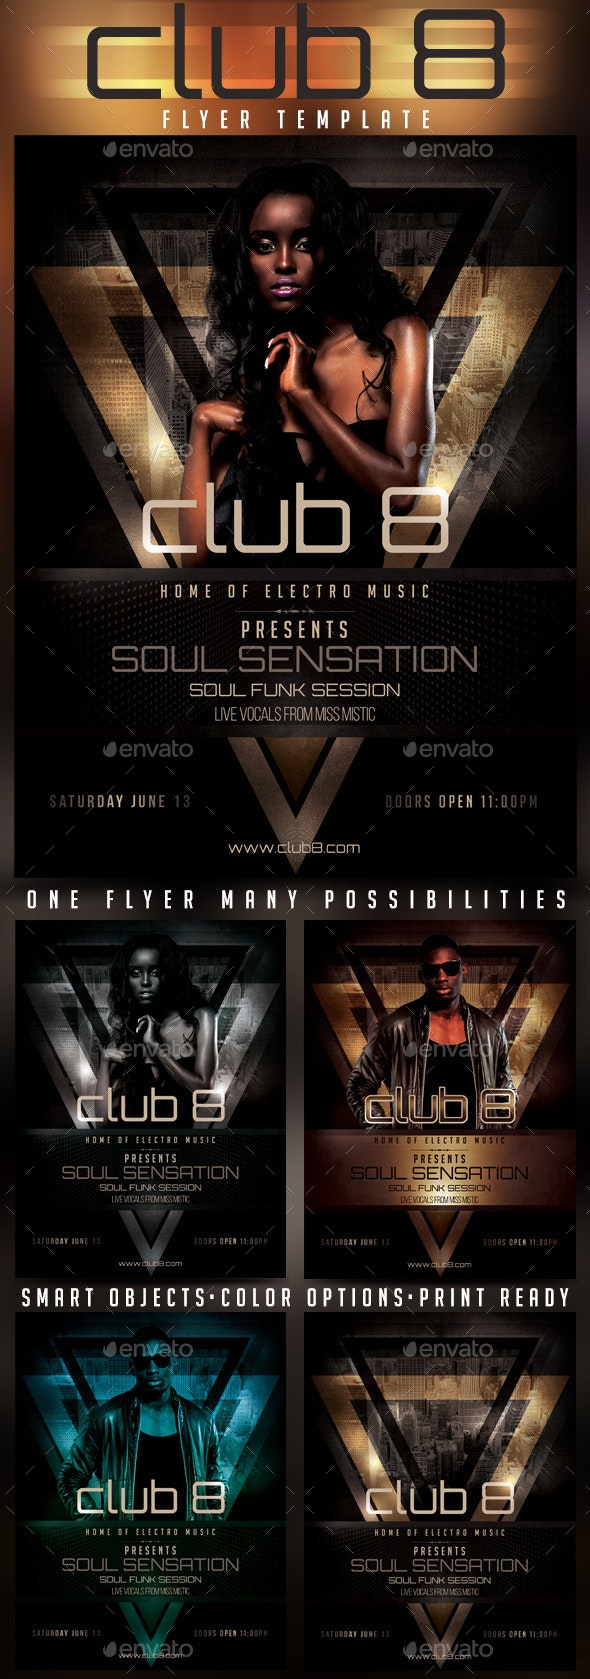 Club 8 Soul Funk Sensation Flyer Template - Clubs & Parties Events